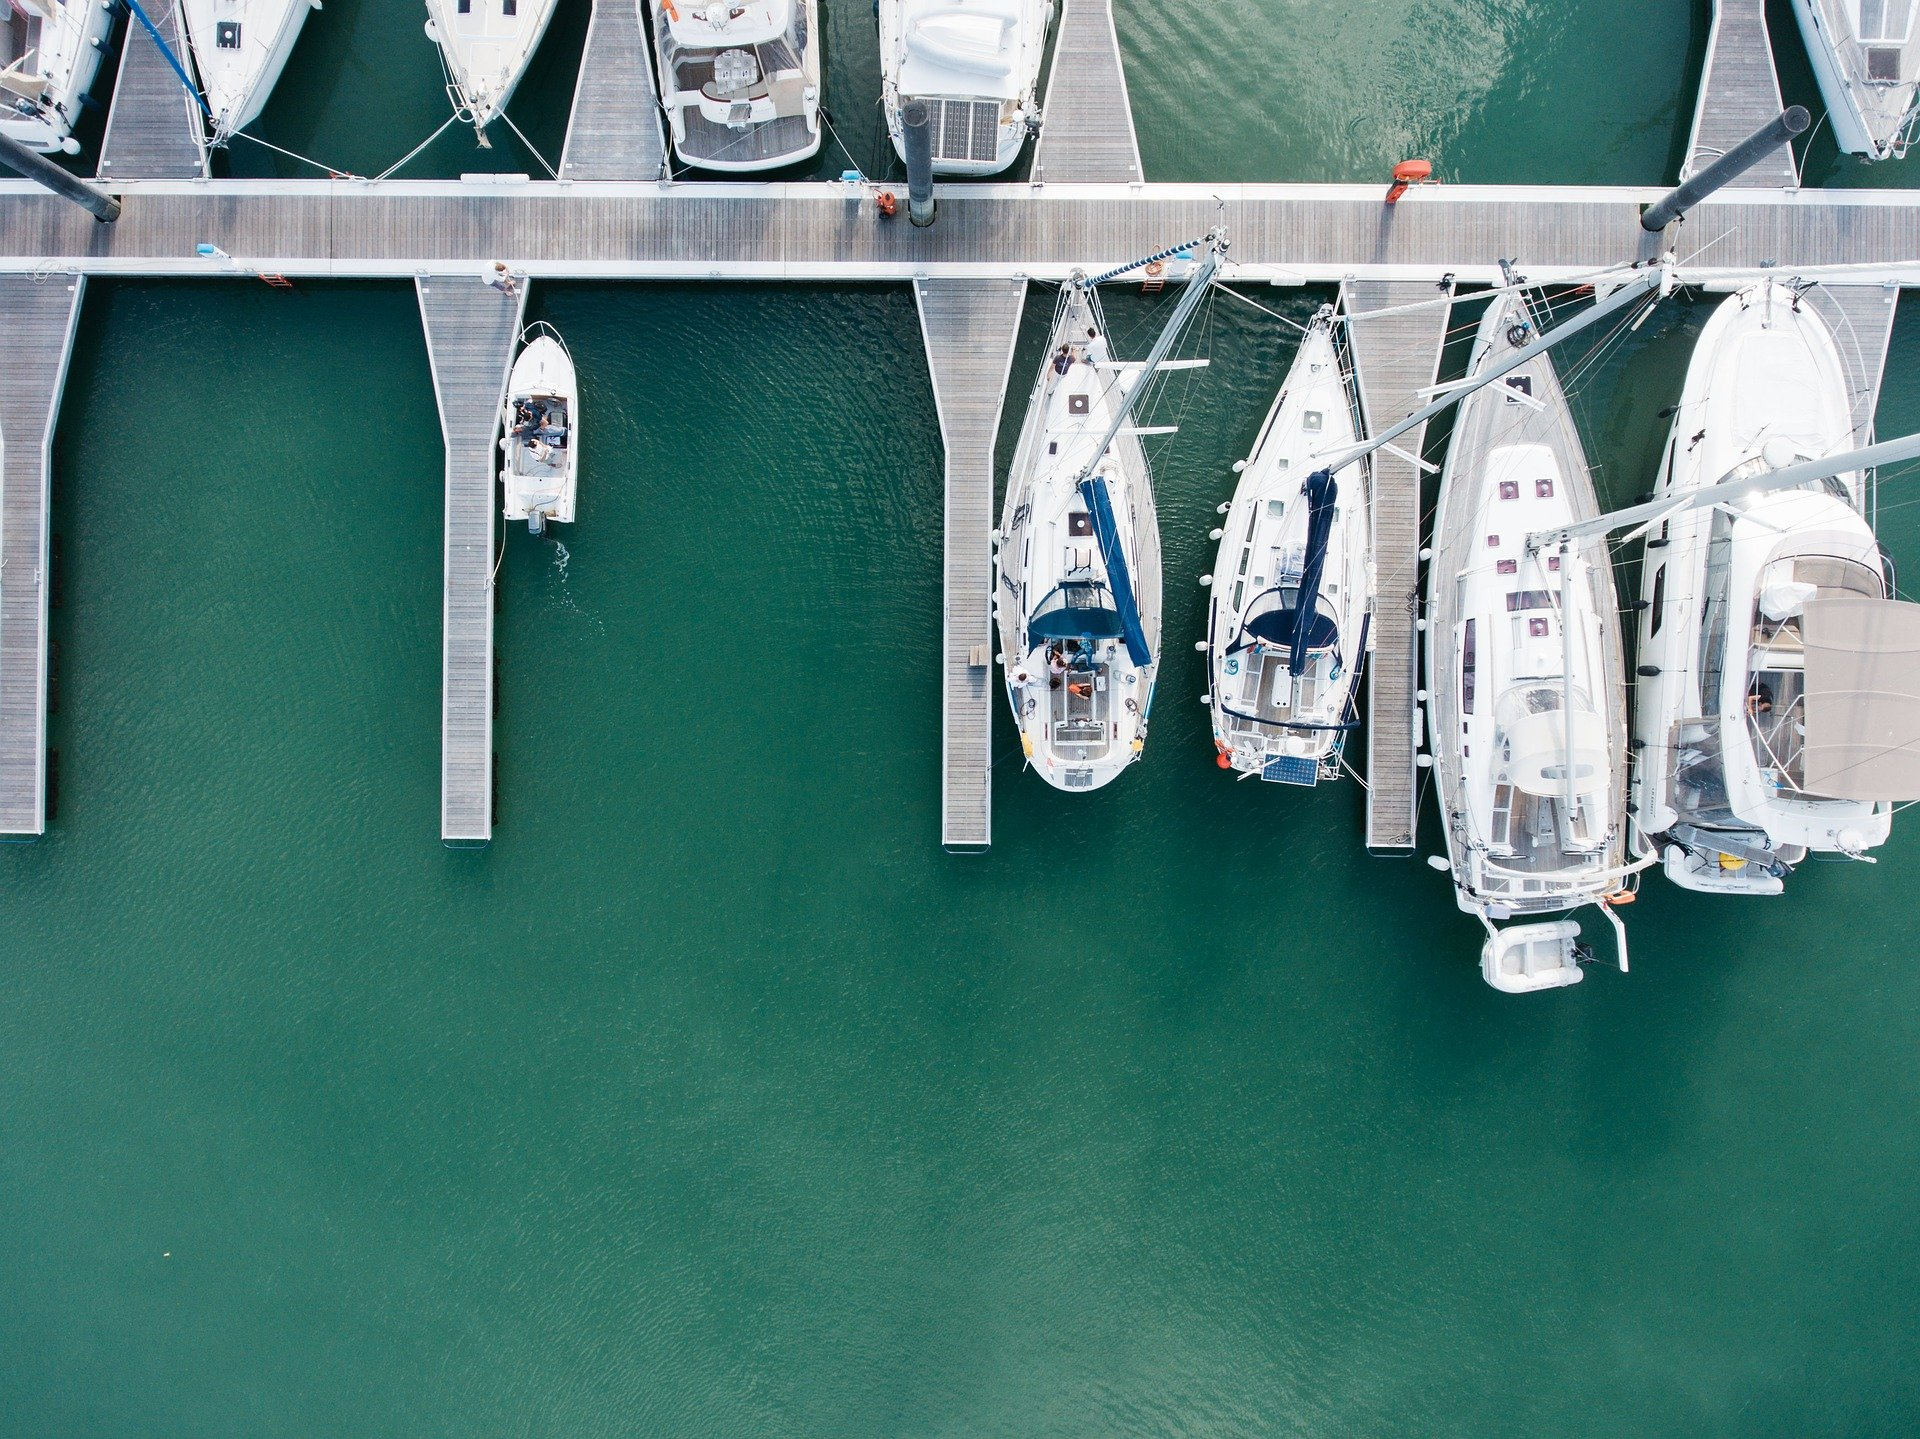 aerial shot of yachts in marina with teal water